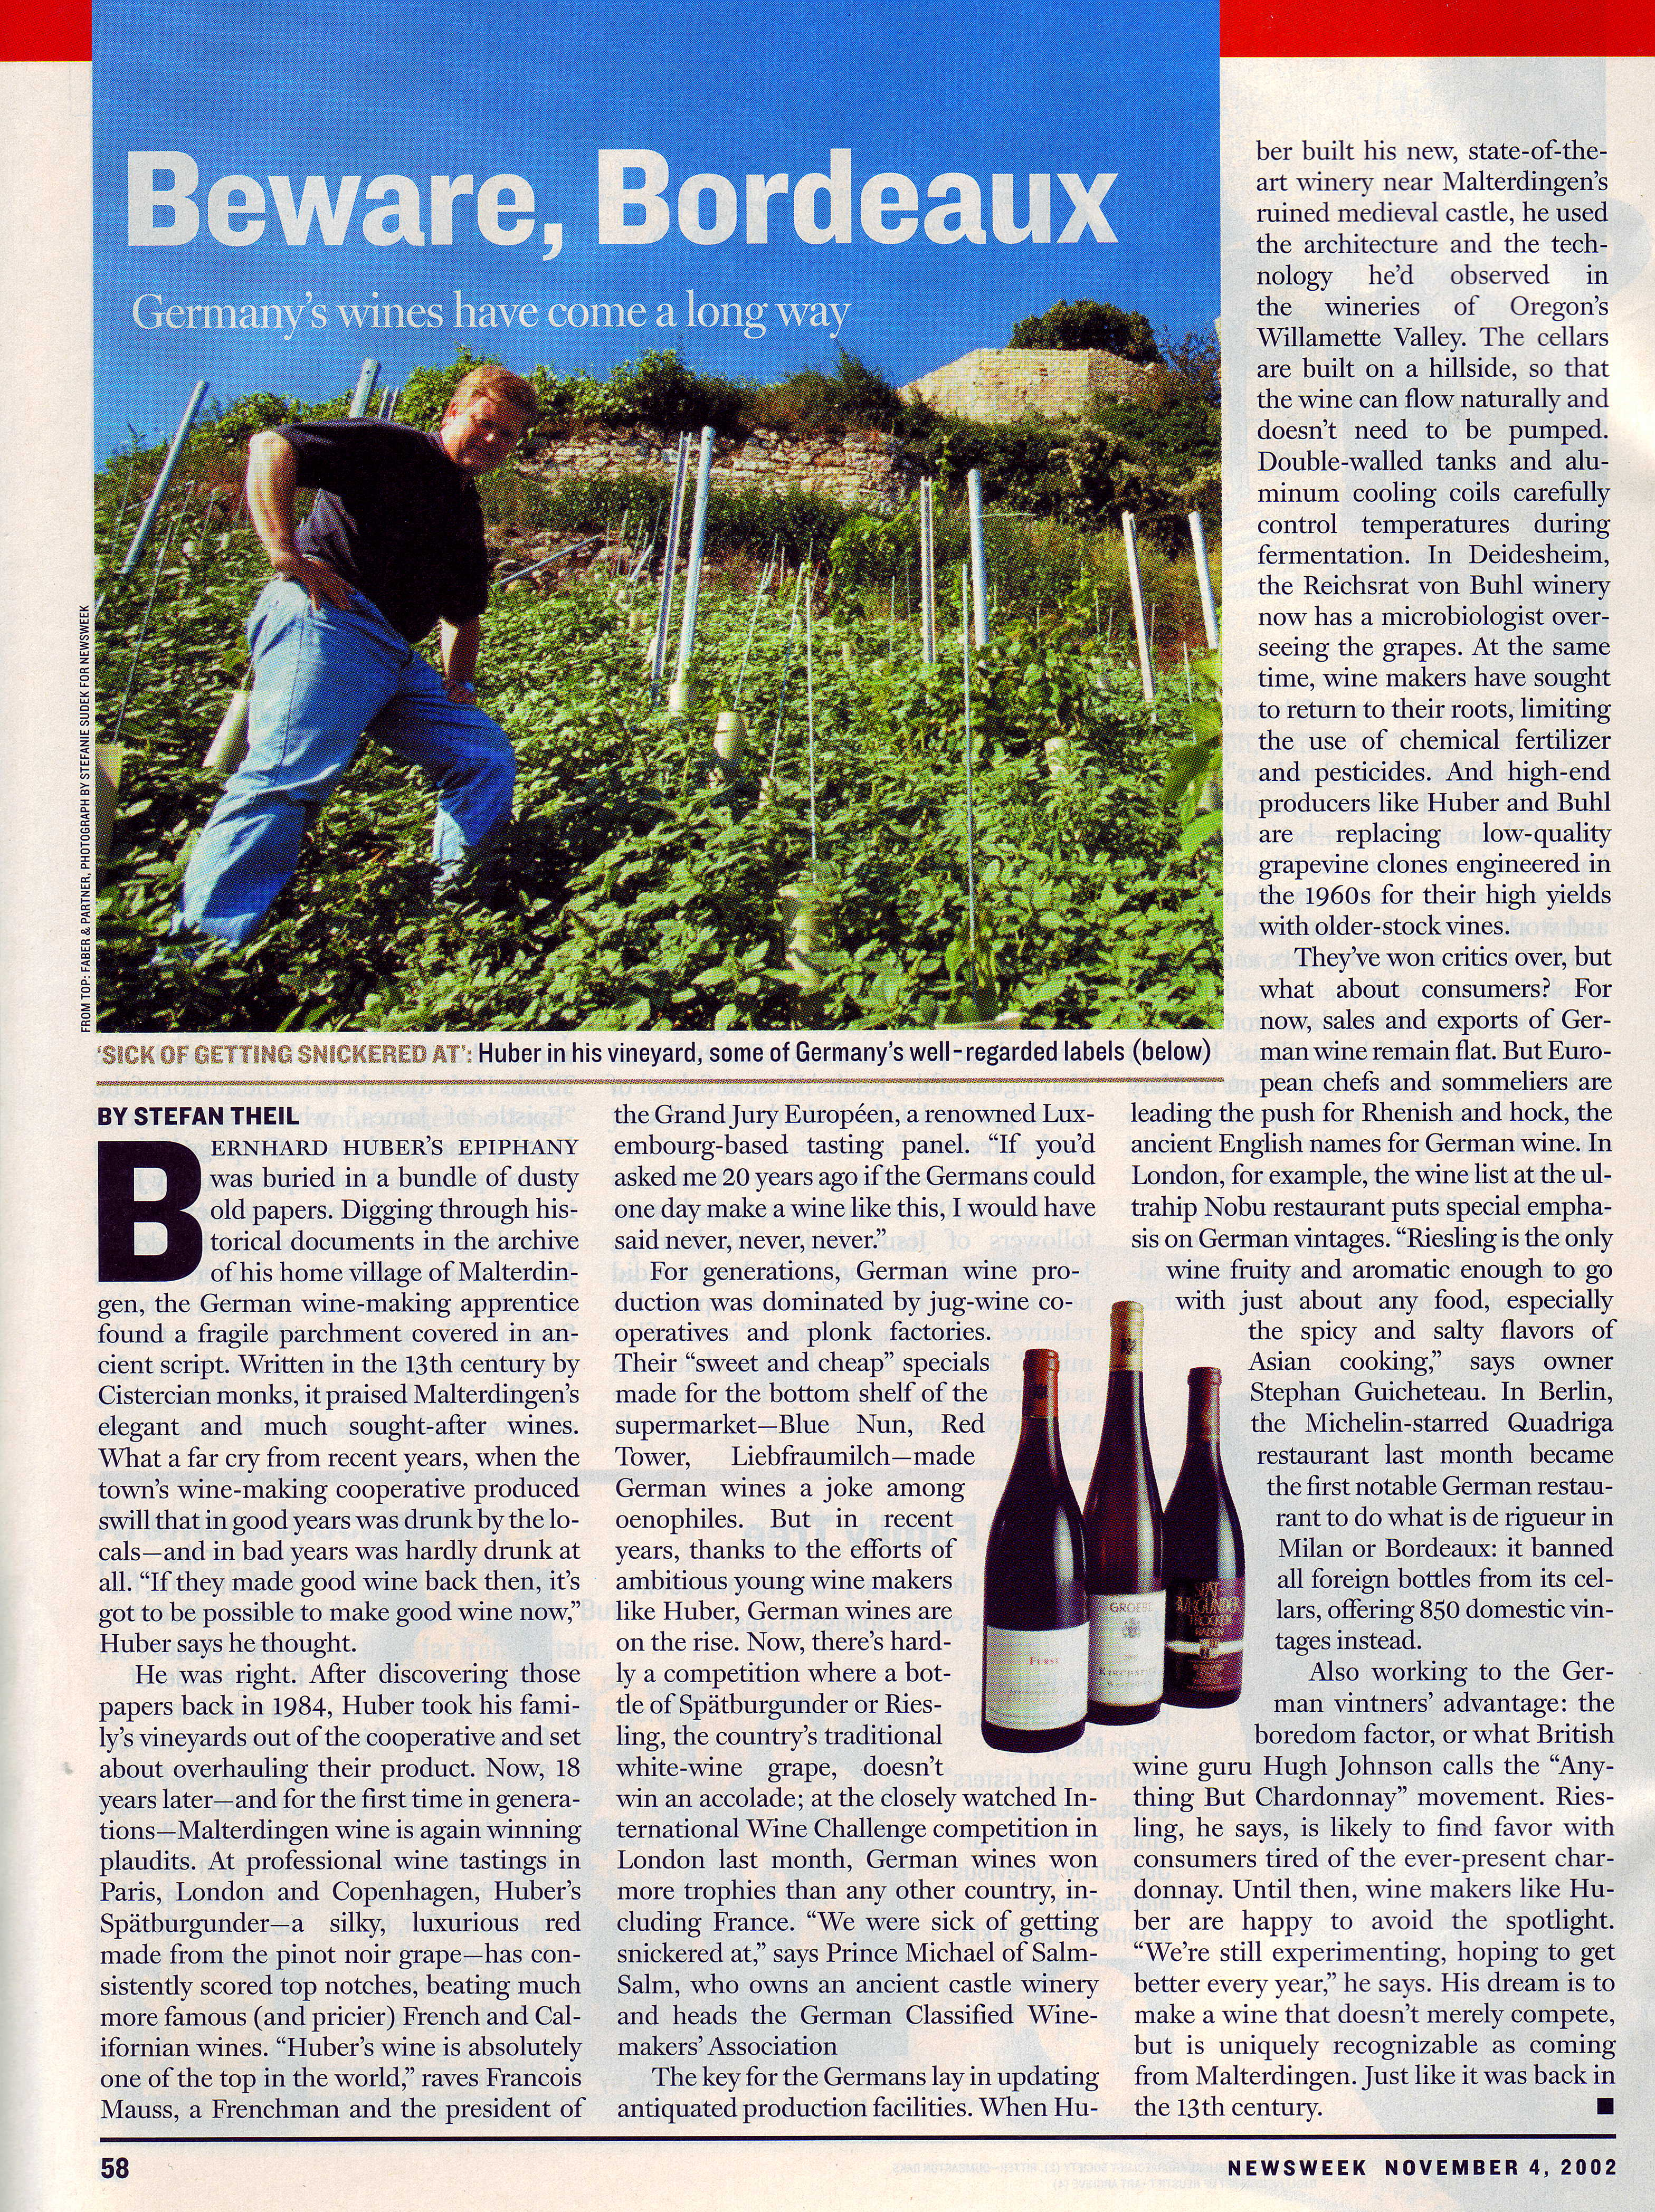 Beware Bordeaux - Germany´s wines have come a long way